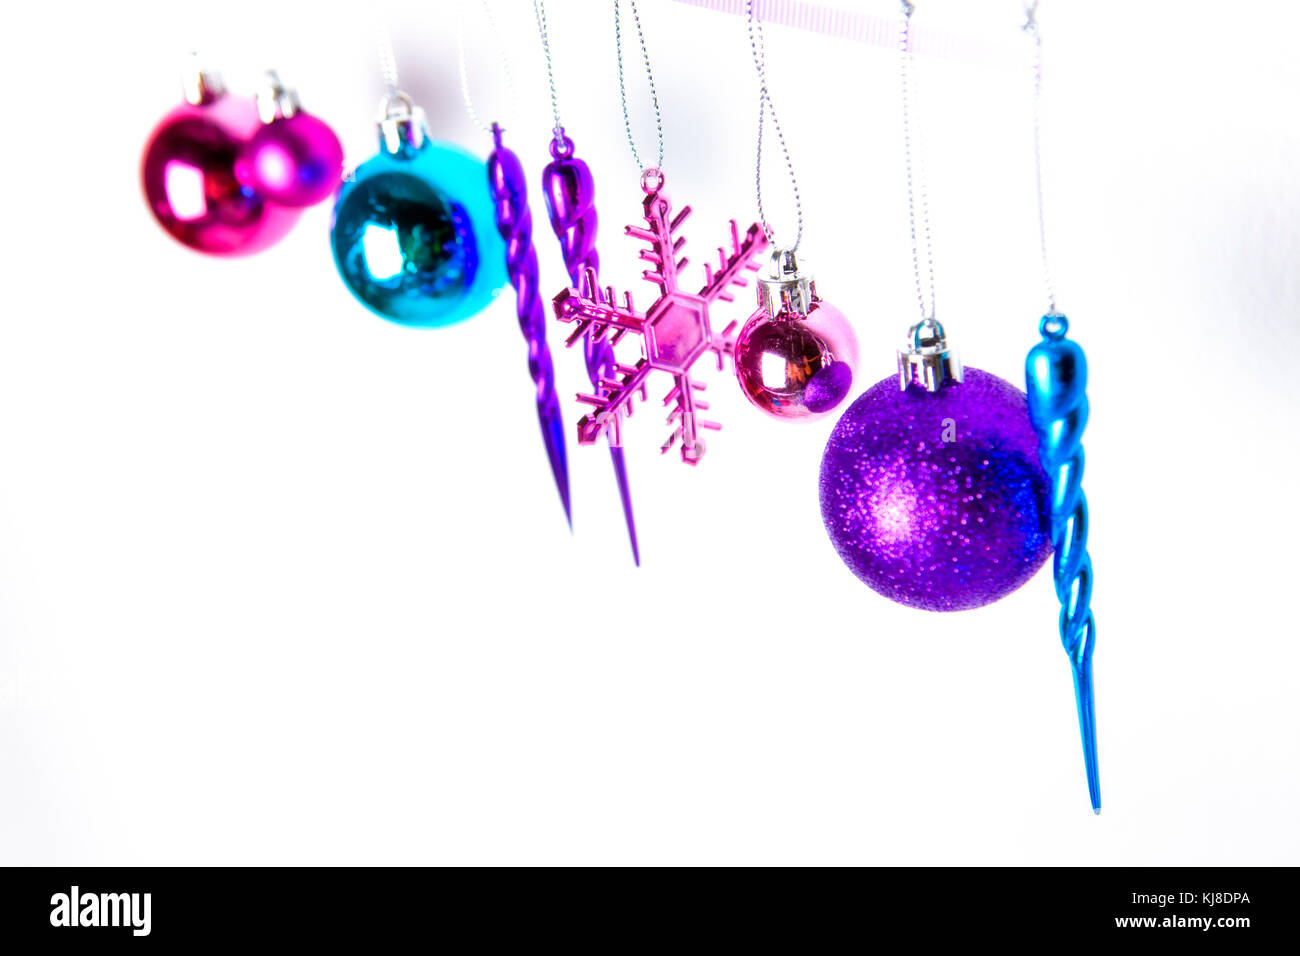 Christmas goods - Stock Image